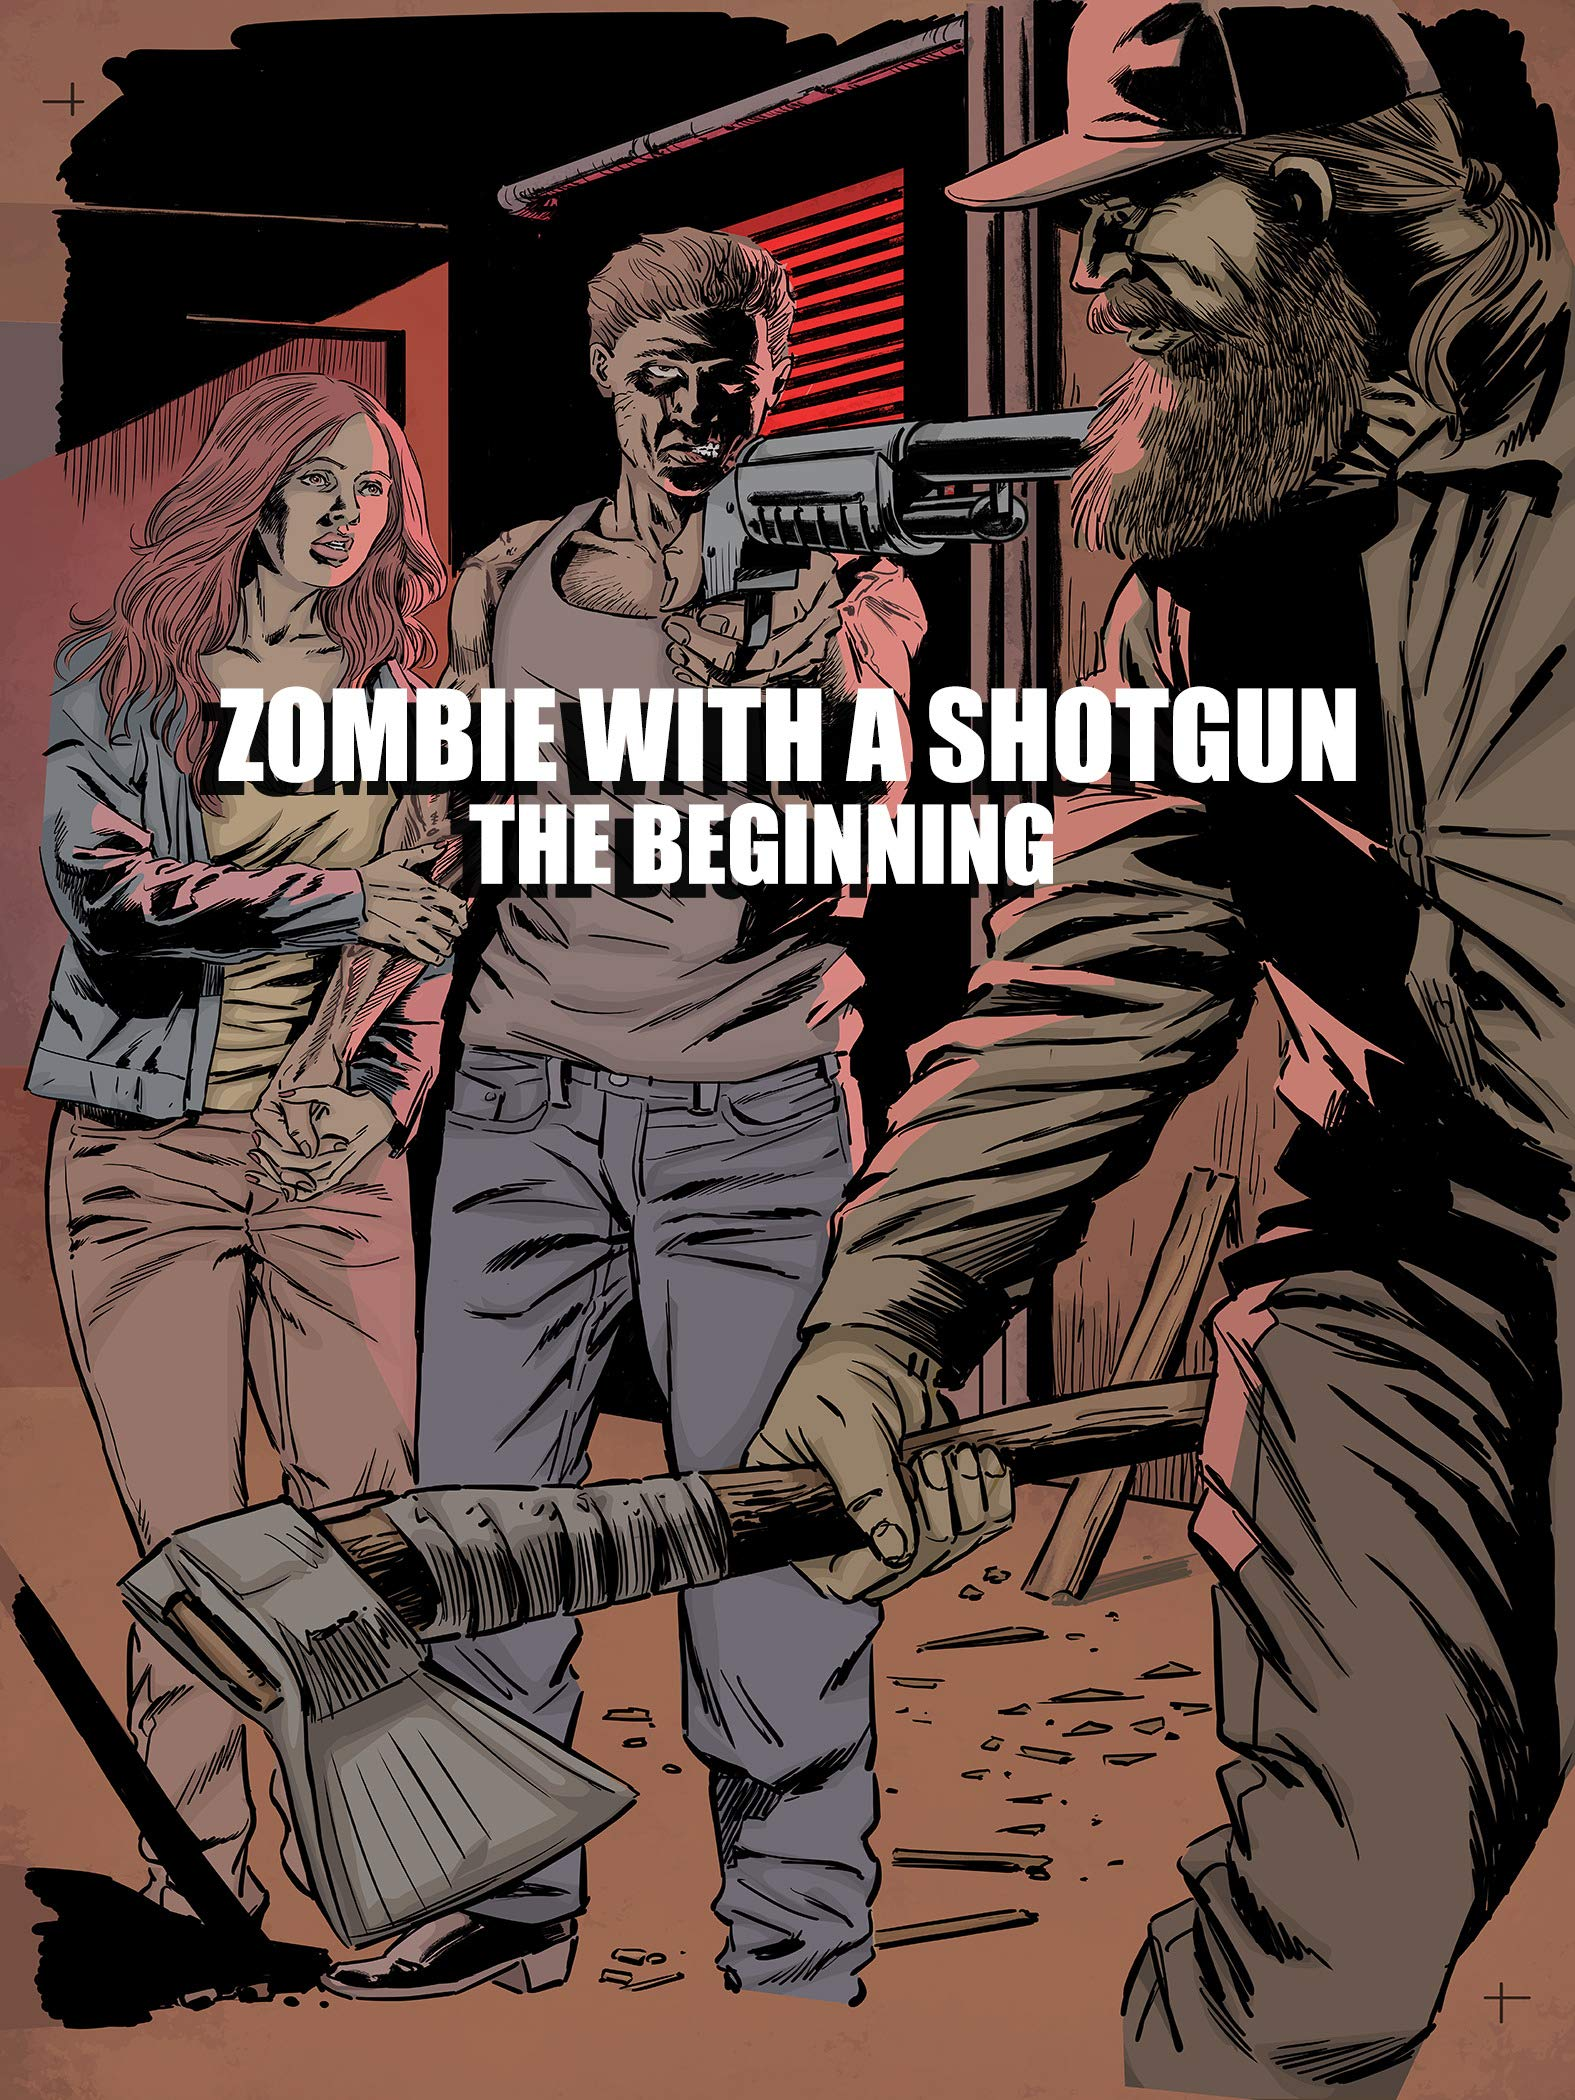 Zombie With a Shotgun: The Beginning